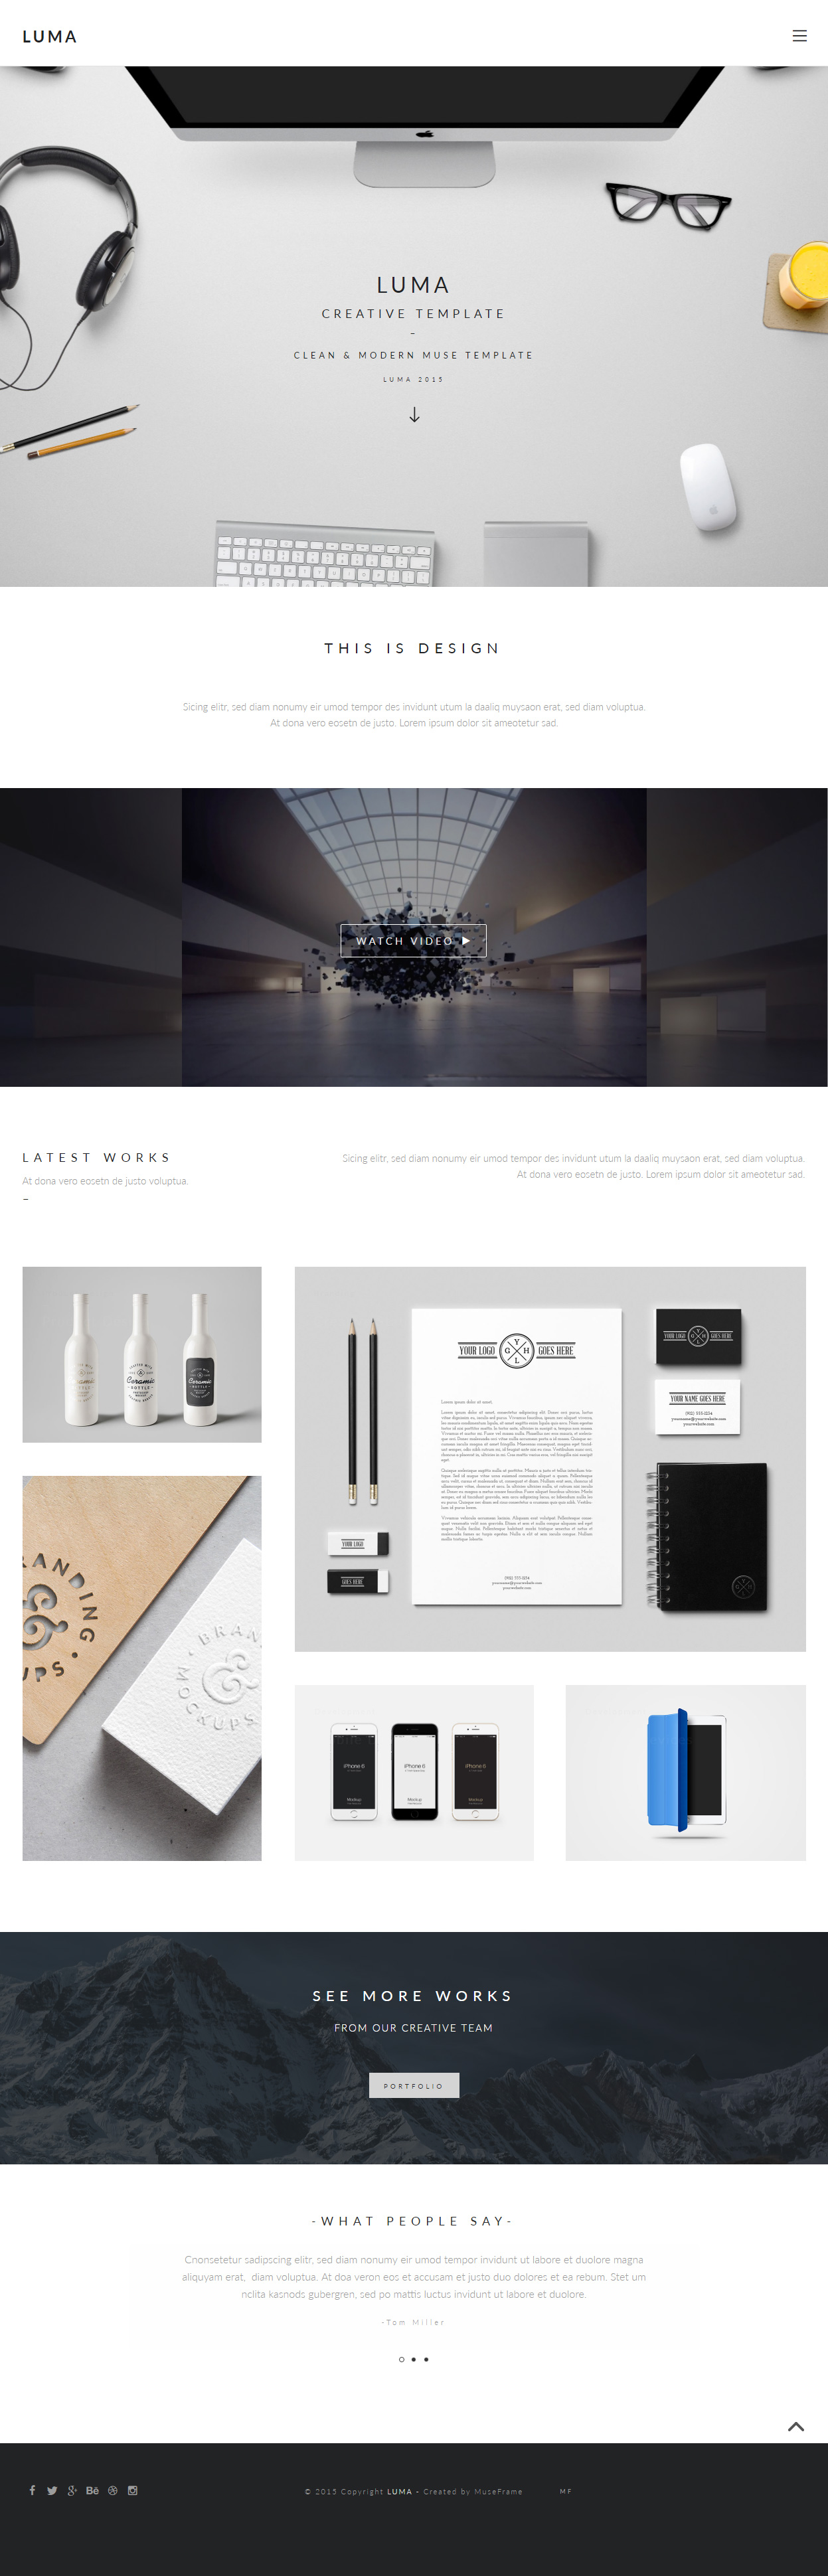 5 best photography muse template in 2016 responsive miracle luma photography muse template pronofoot35fo Images